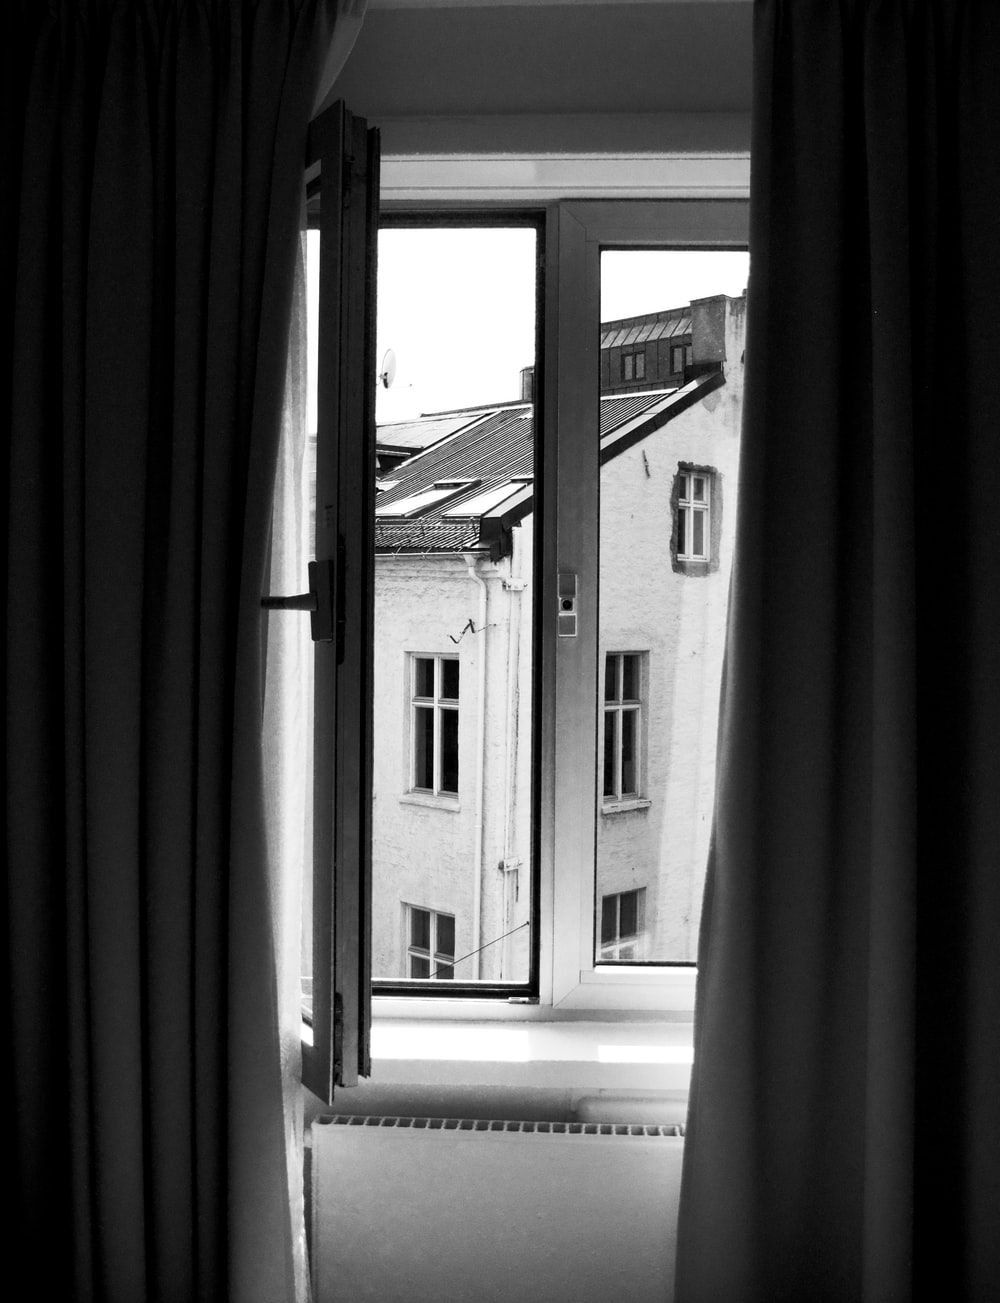 grayscale photo of wooden framed glass pane window opened